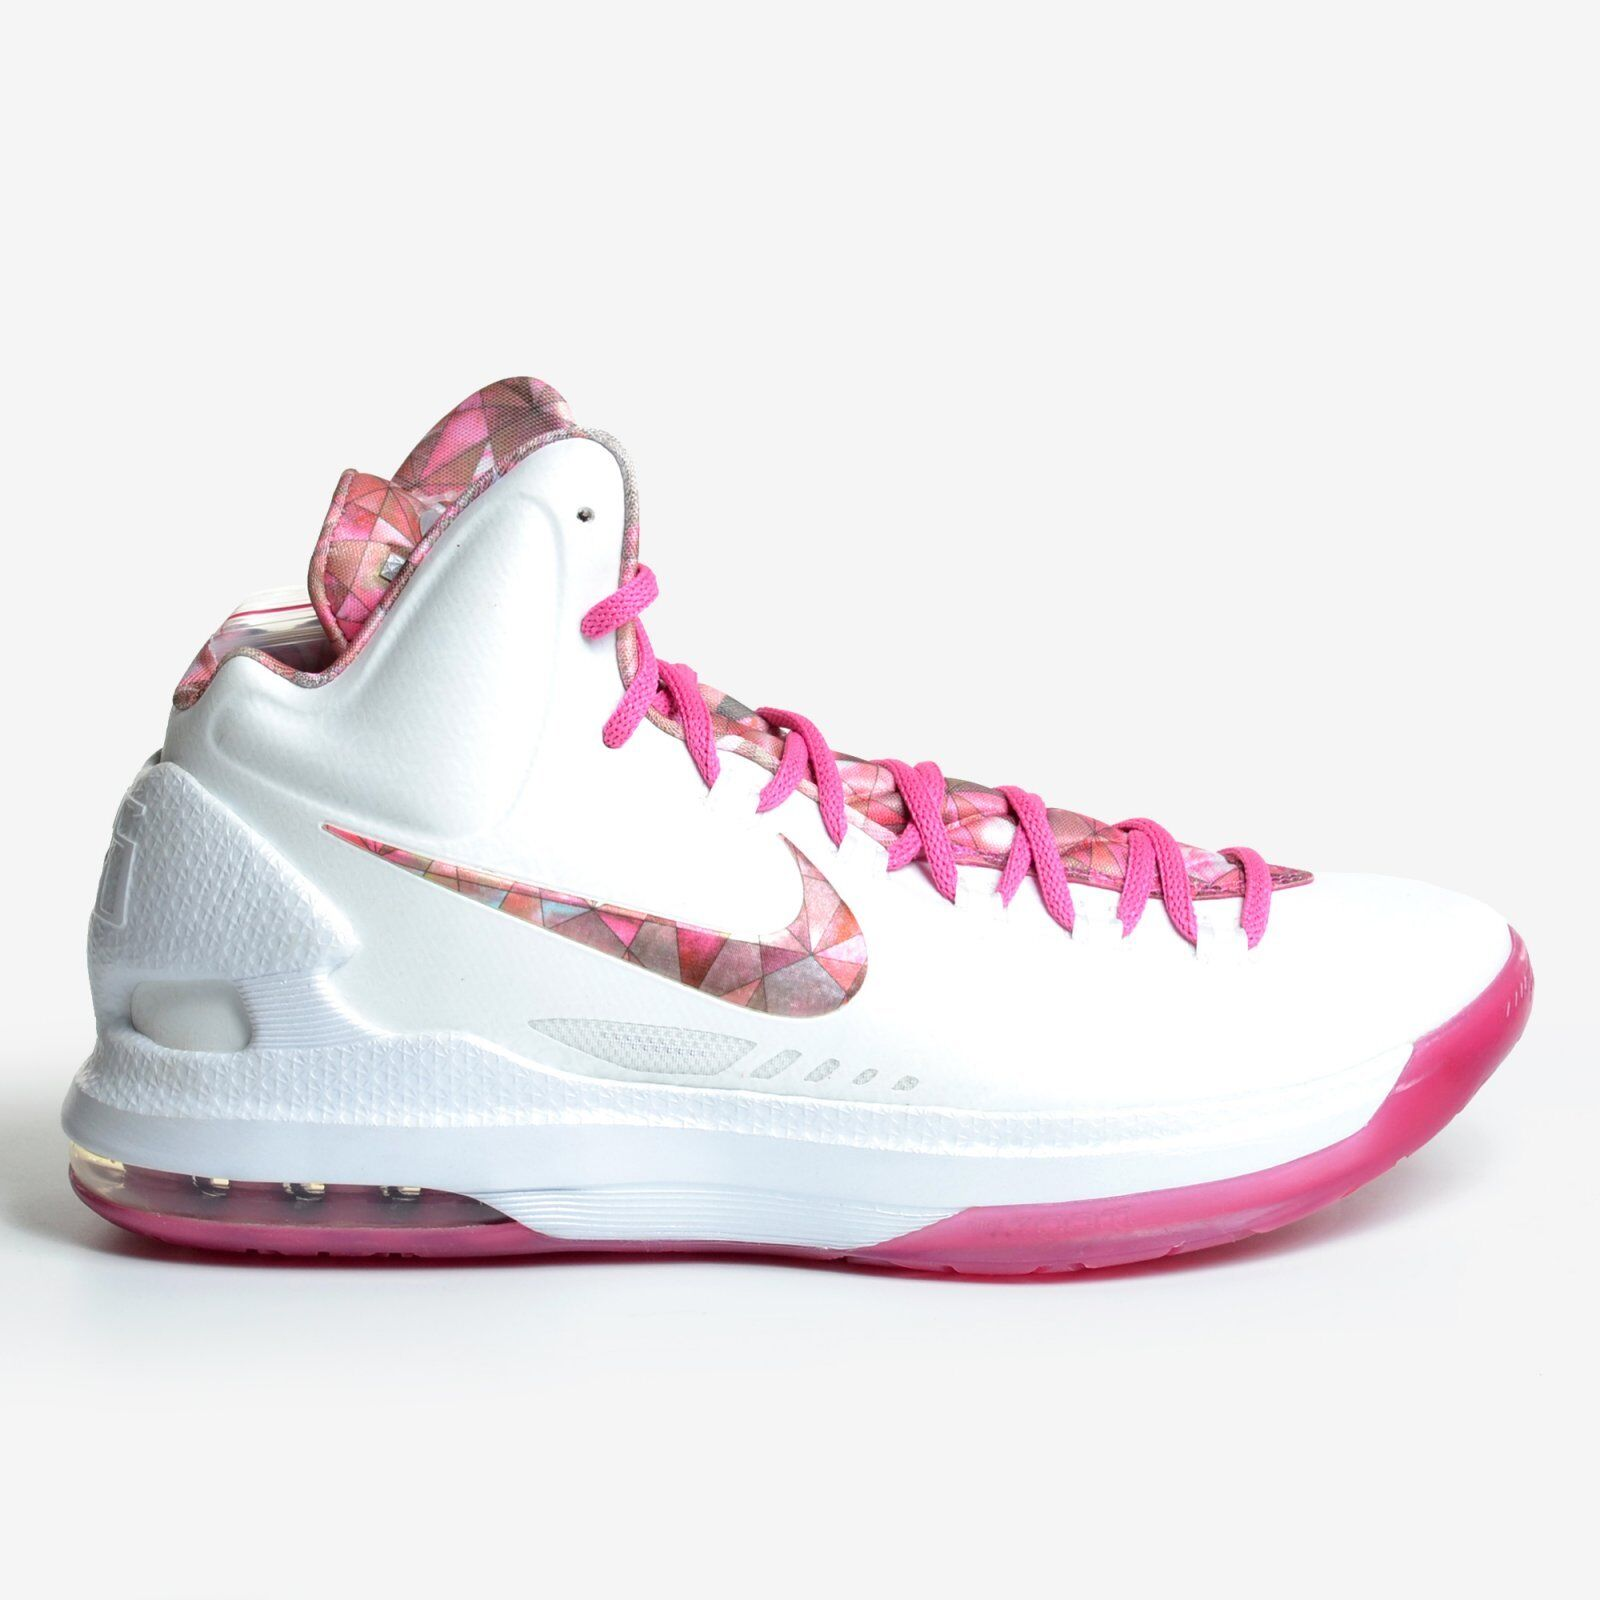 Nike KD 5 Aunt Pearl 2012 Summit White Pinkfire V Basketball Pink DS 598601-100